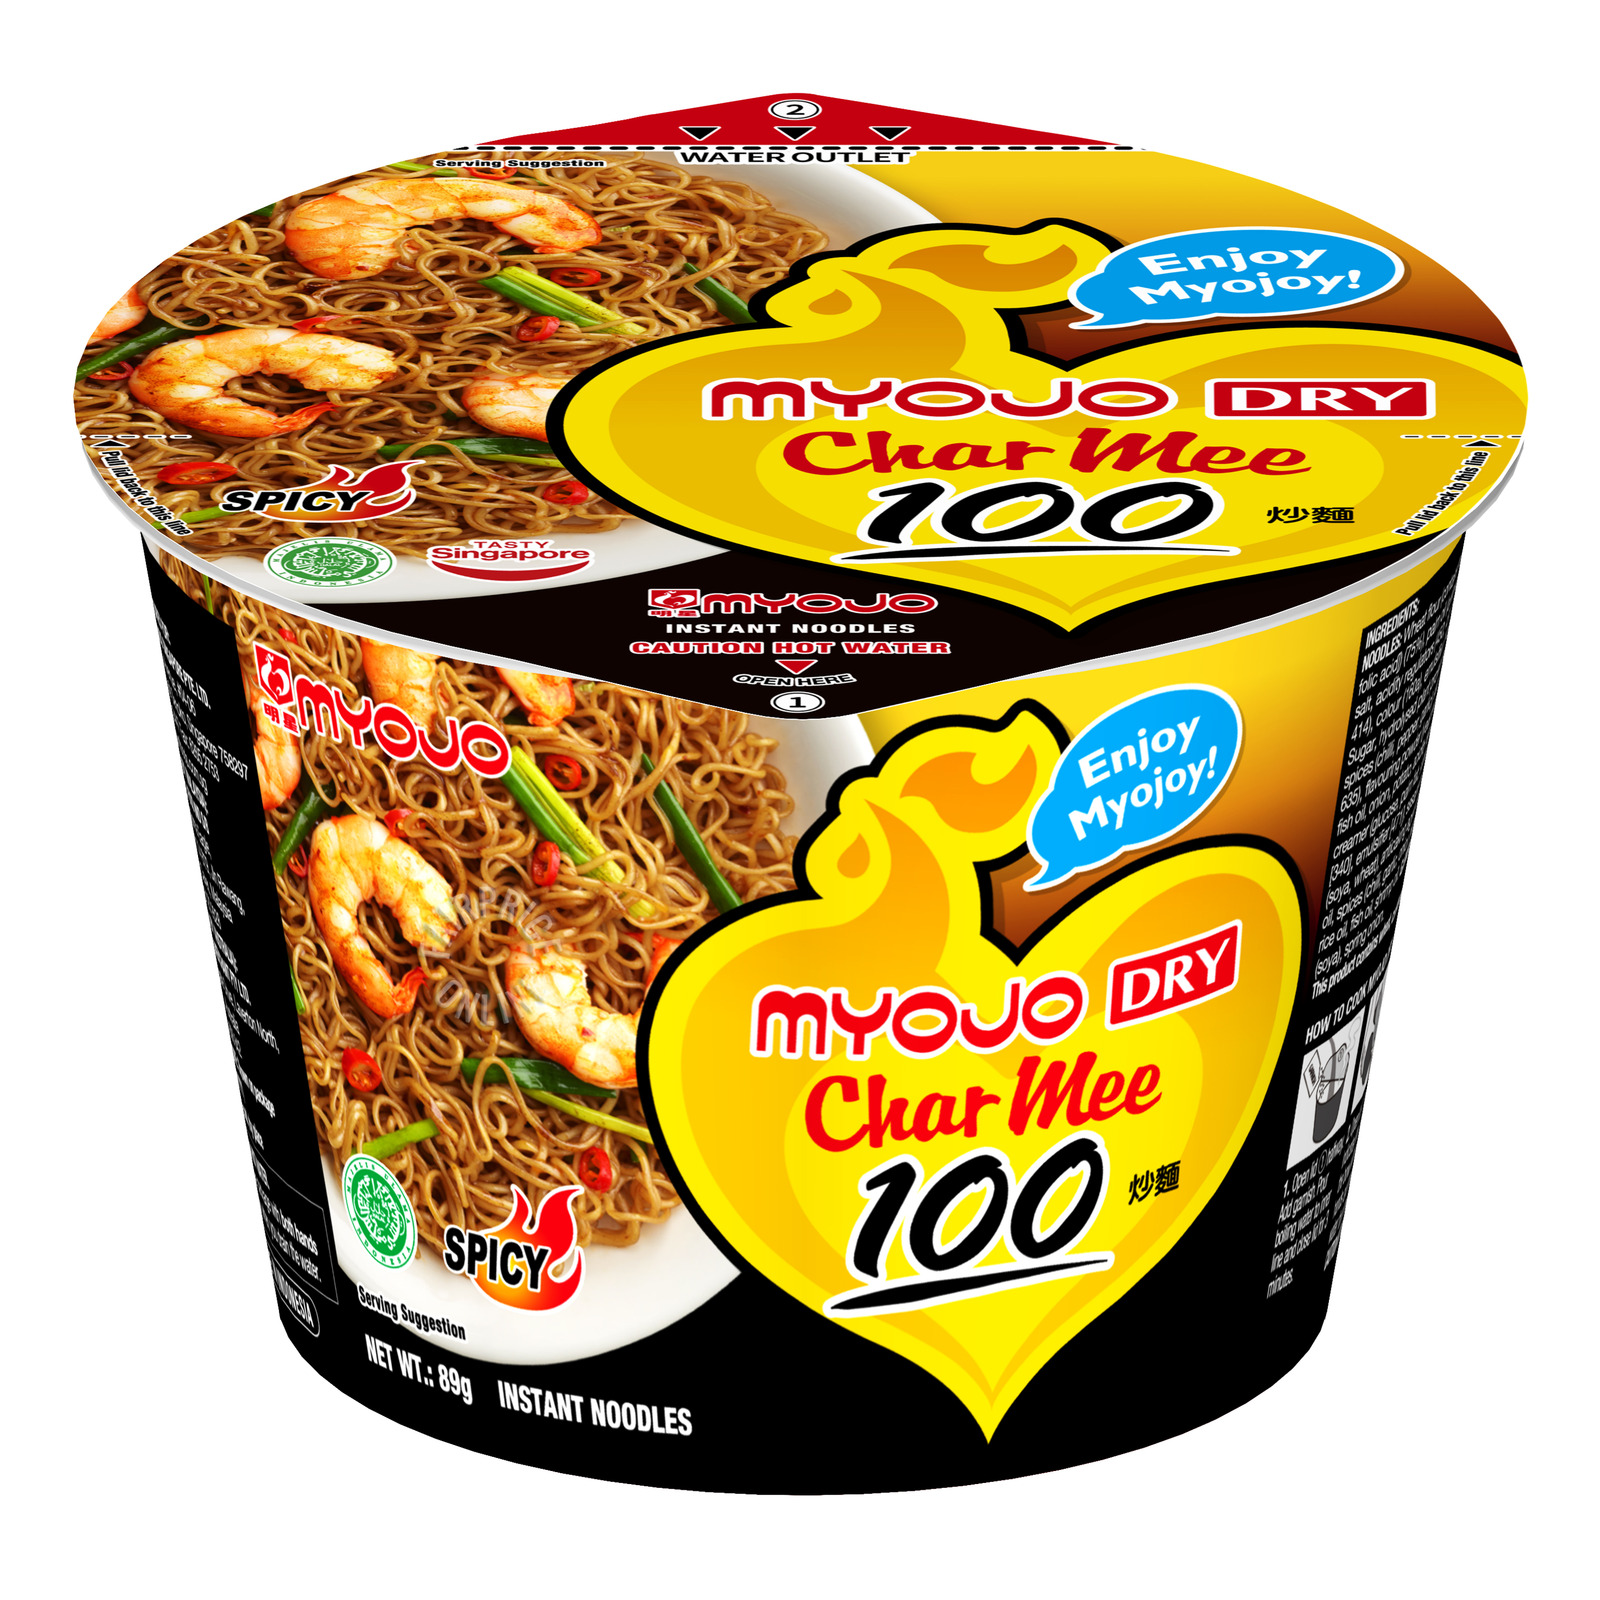 Myojo Dry Instant Bowl Noodle - Char Mee